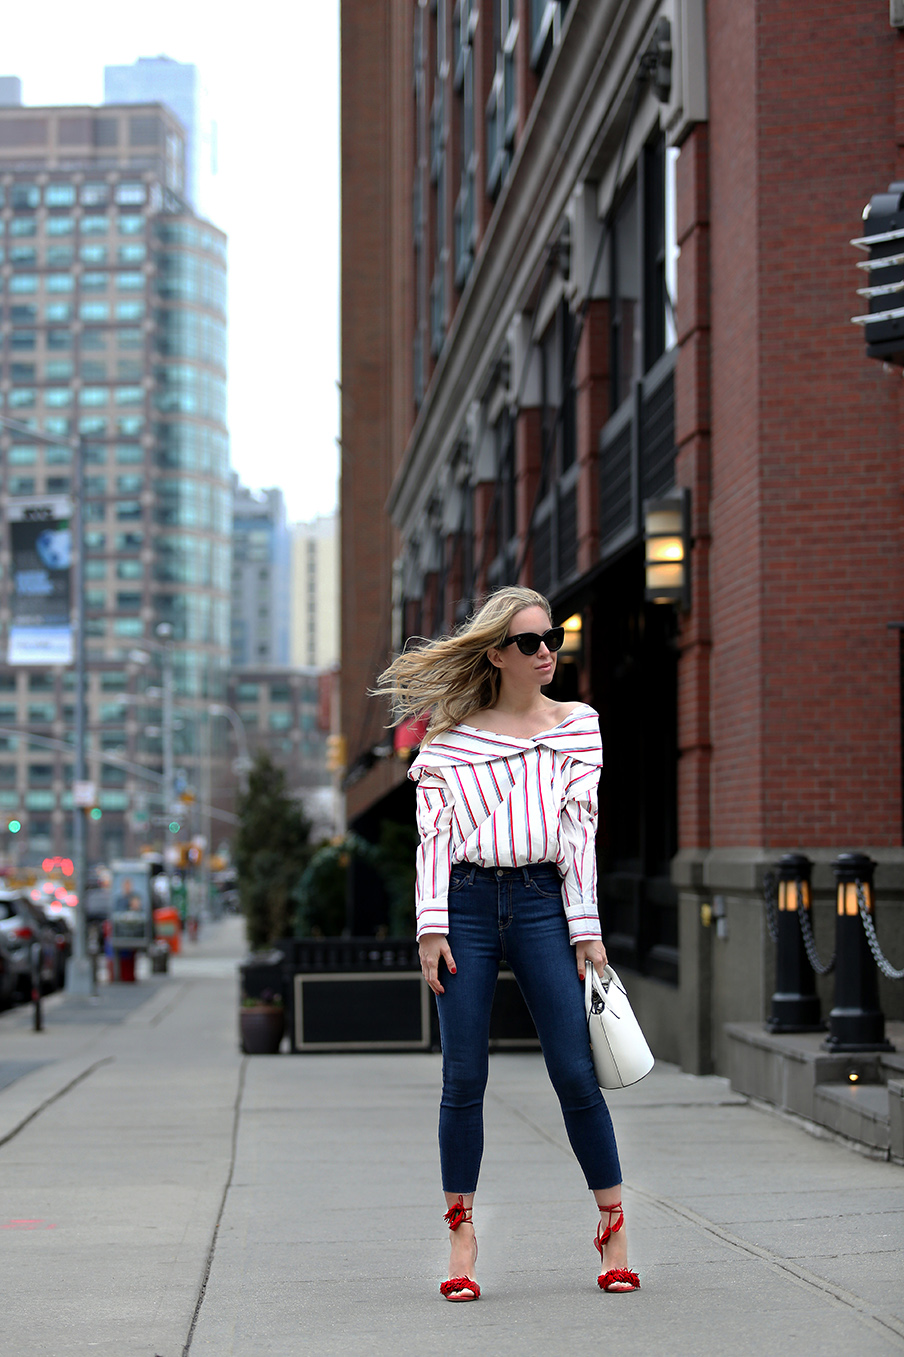 Roxy Hotel NYC Staycation - Helena Glazer of Brooklyn Blonde wearing Storets top with Topshop denim, red Aquazzura Wild Things heels, Celine sunglasses